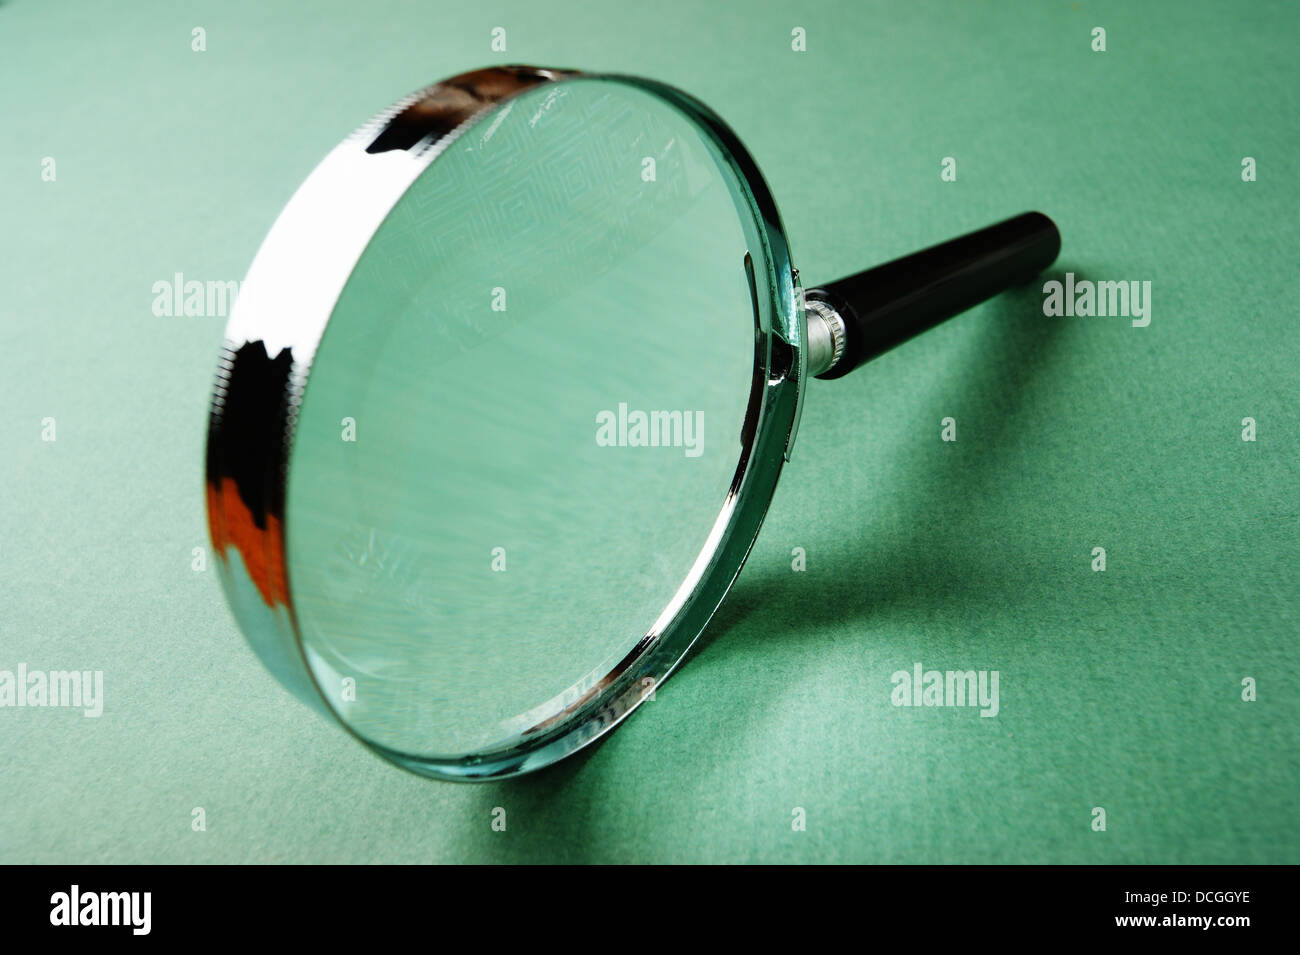 magnifying glass on green background - Stock Image